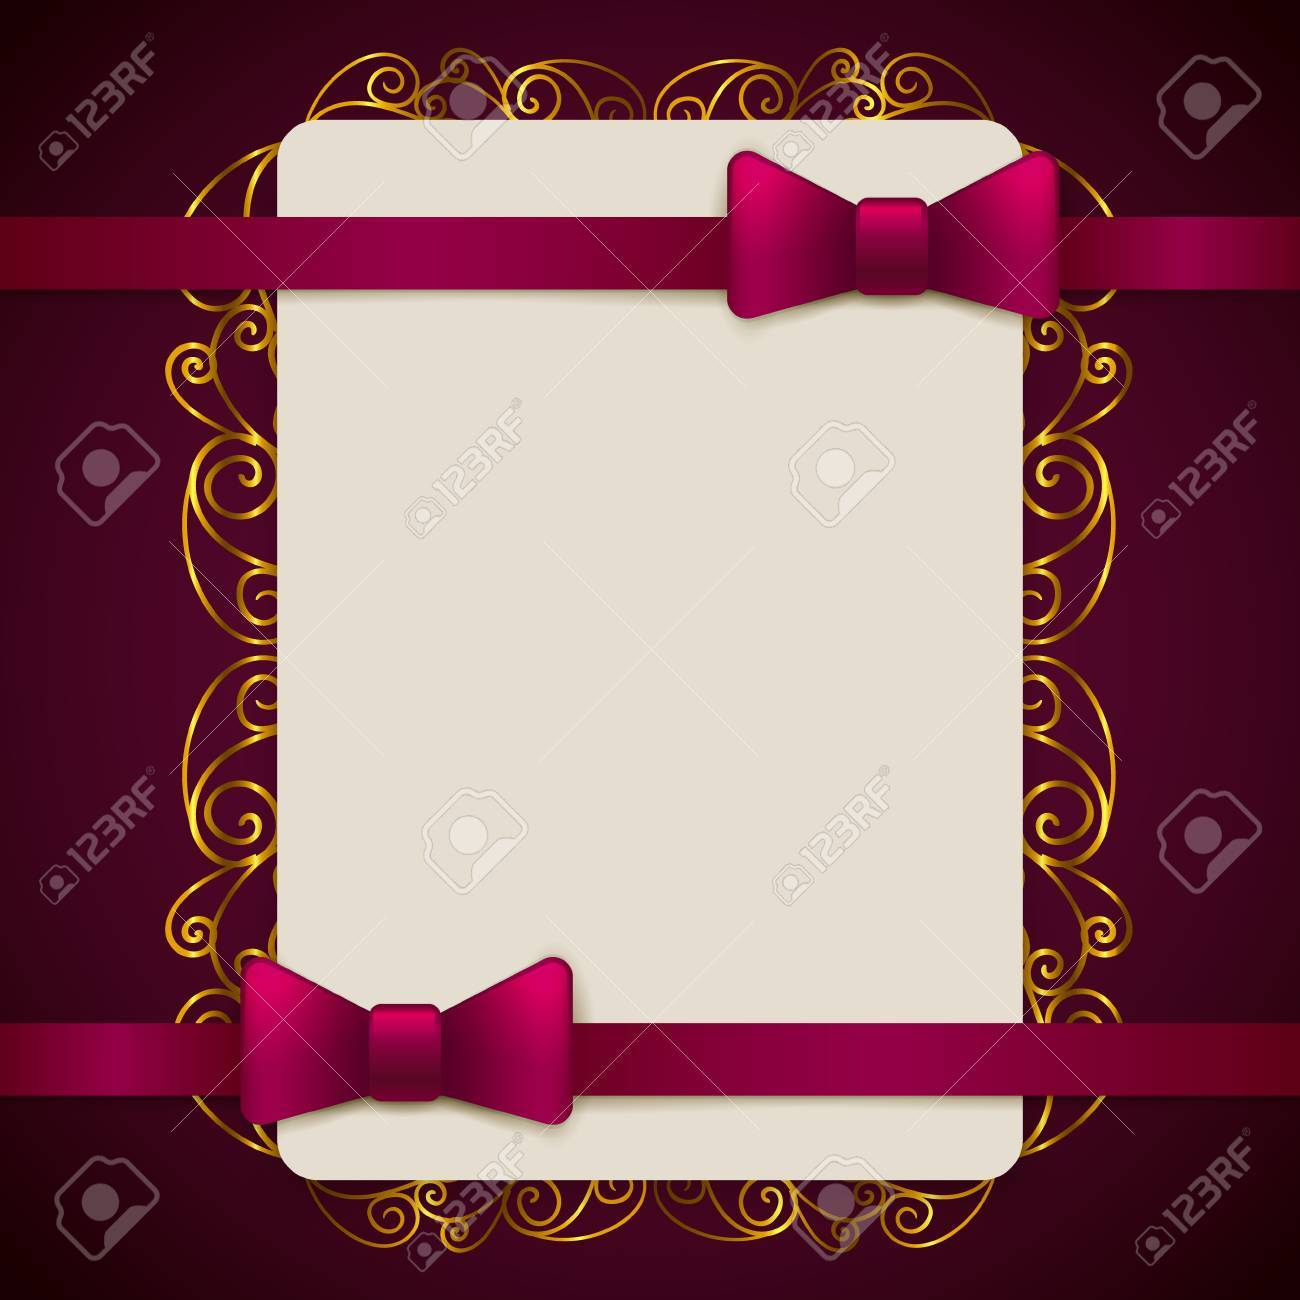 Gold And Violet Vintage Greeting Card Template With Bow And Ribbon